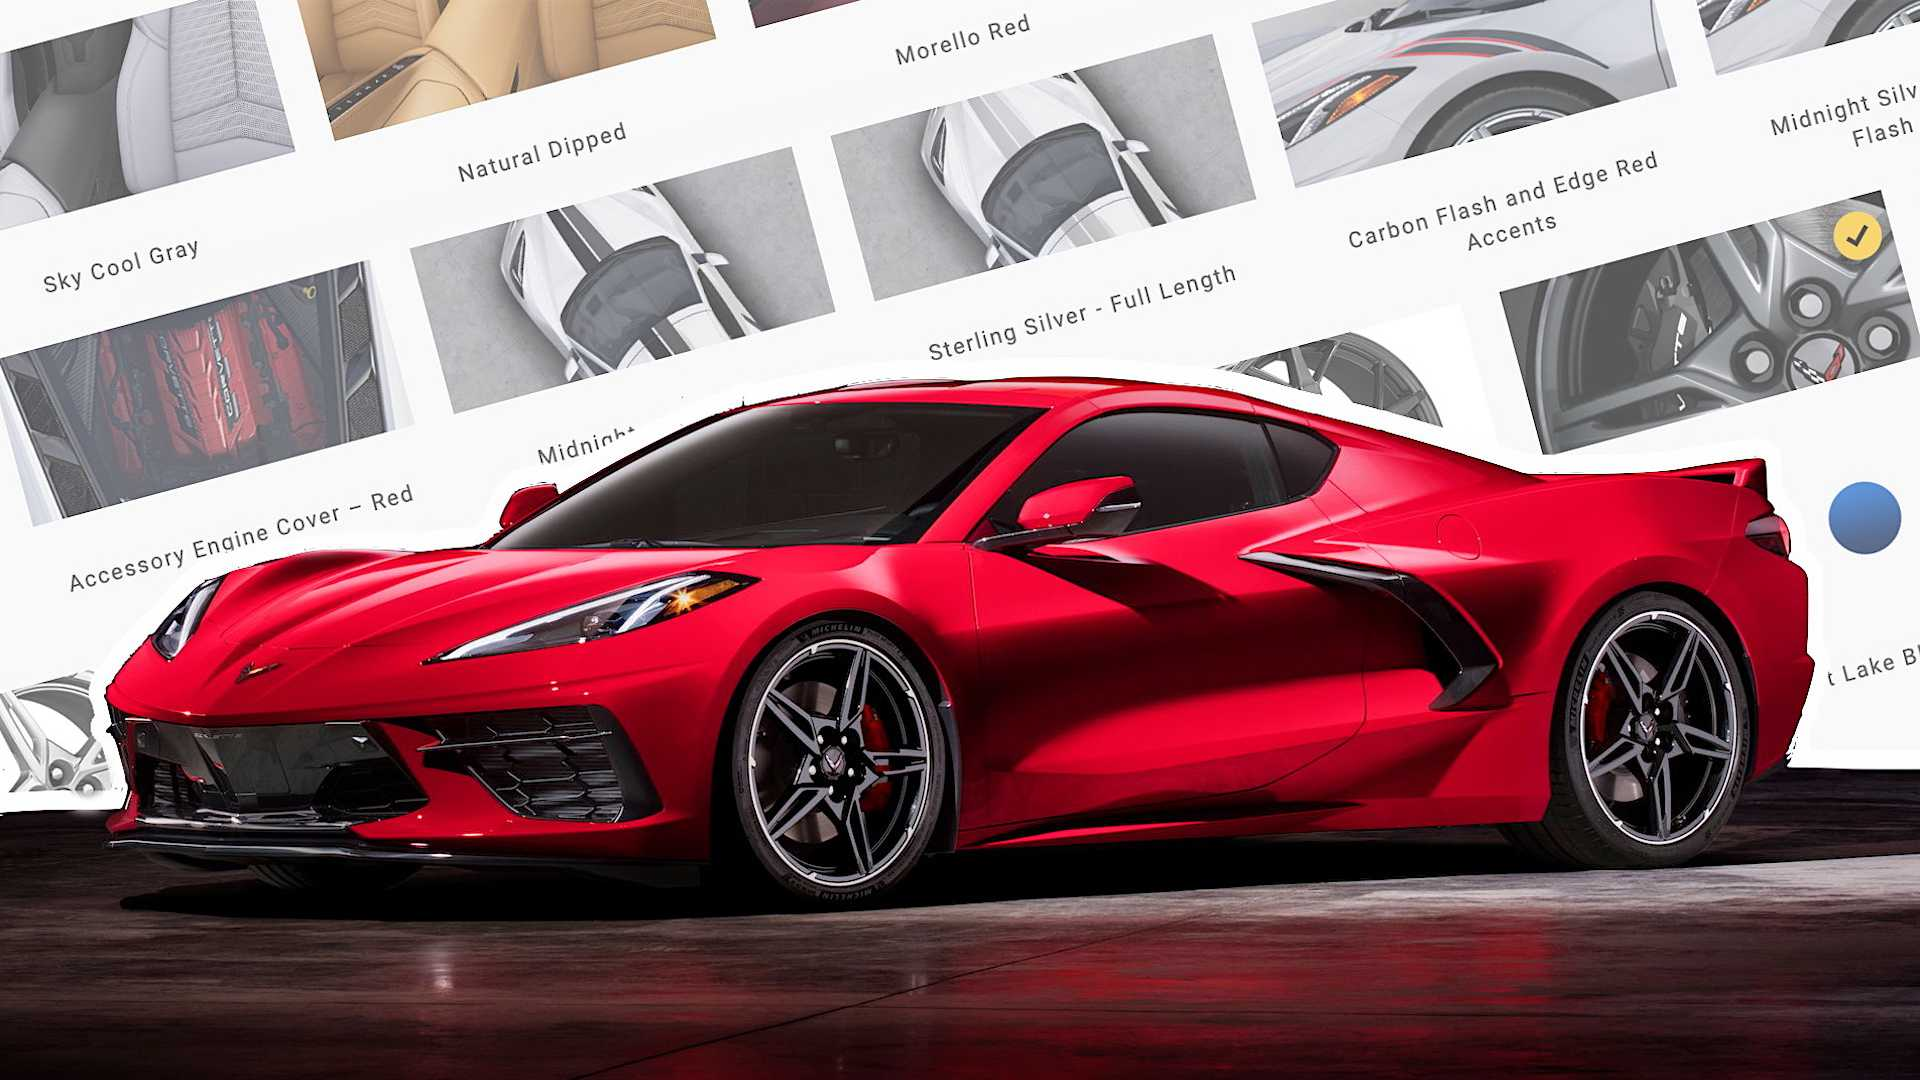 2020 Chevy Corvette Stingray Nearly Sold Out For First Model